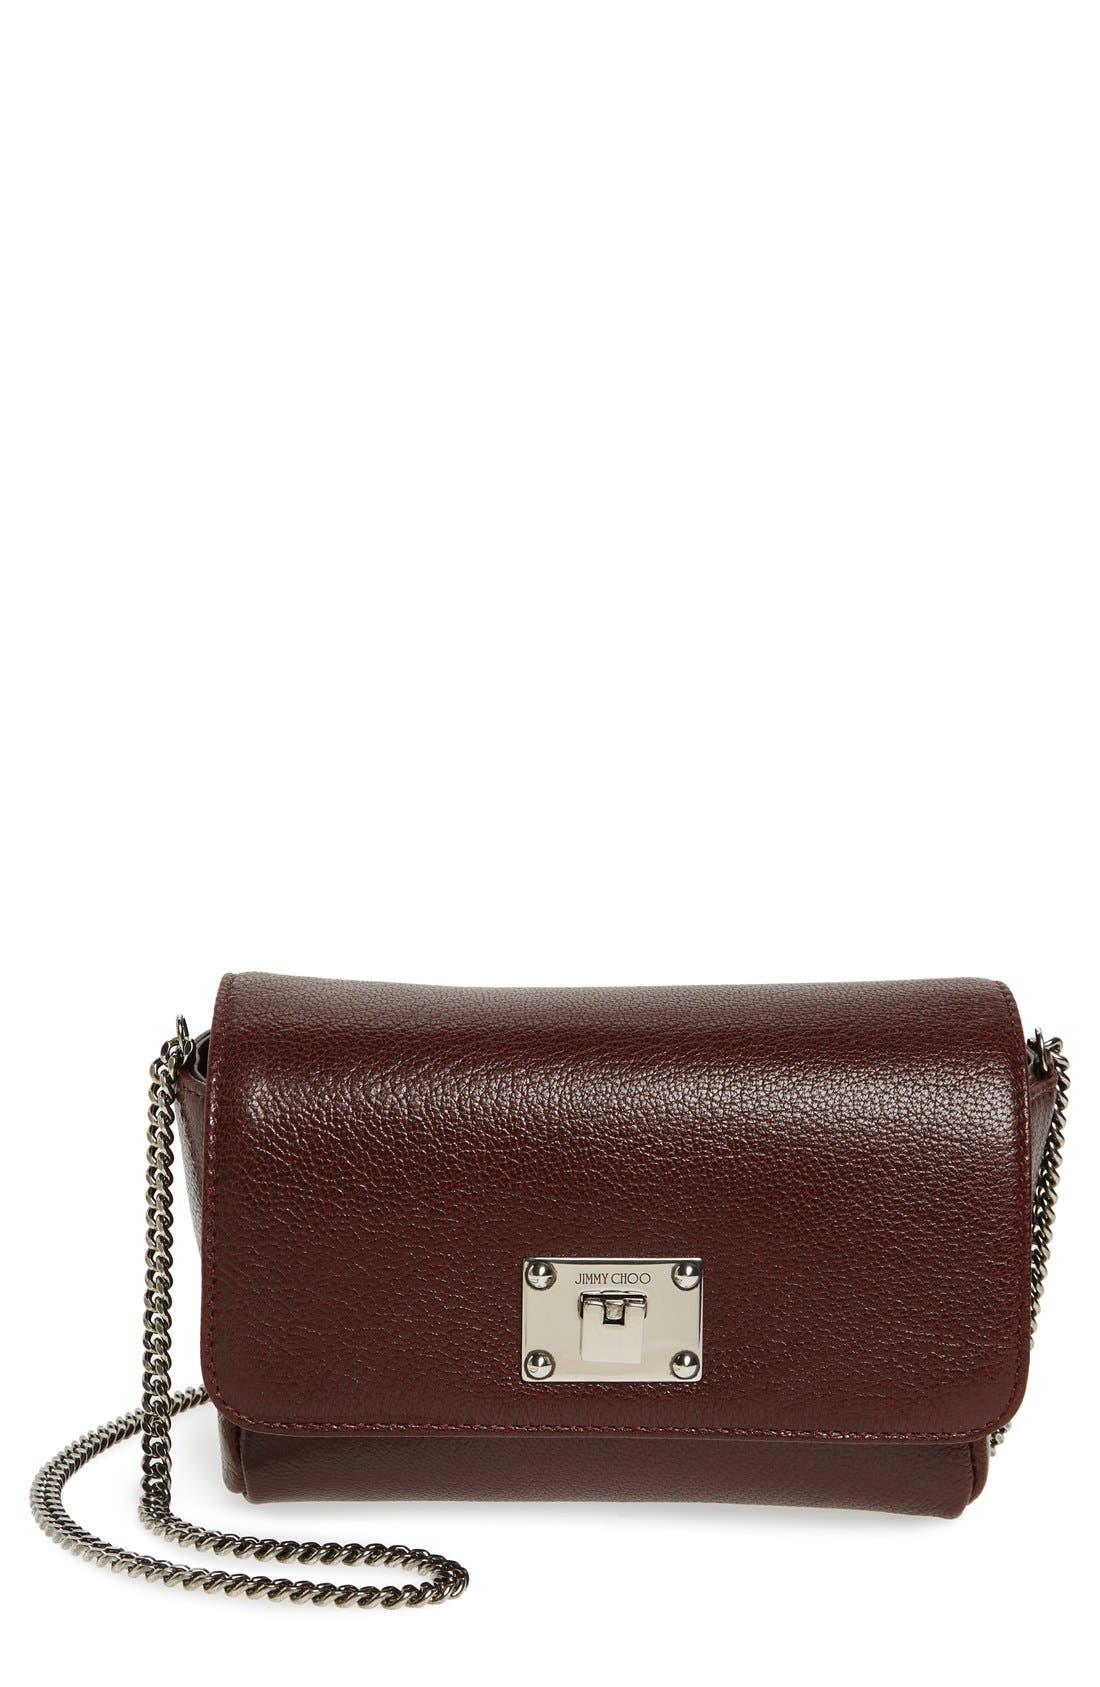 Main Image - Jimmy Choo 'Ruby' Grainy Leather Clutch